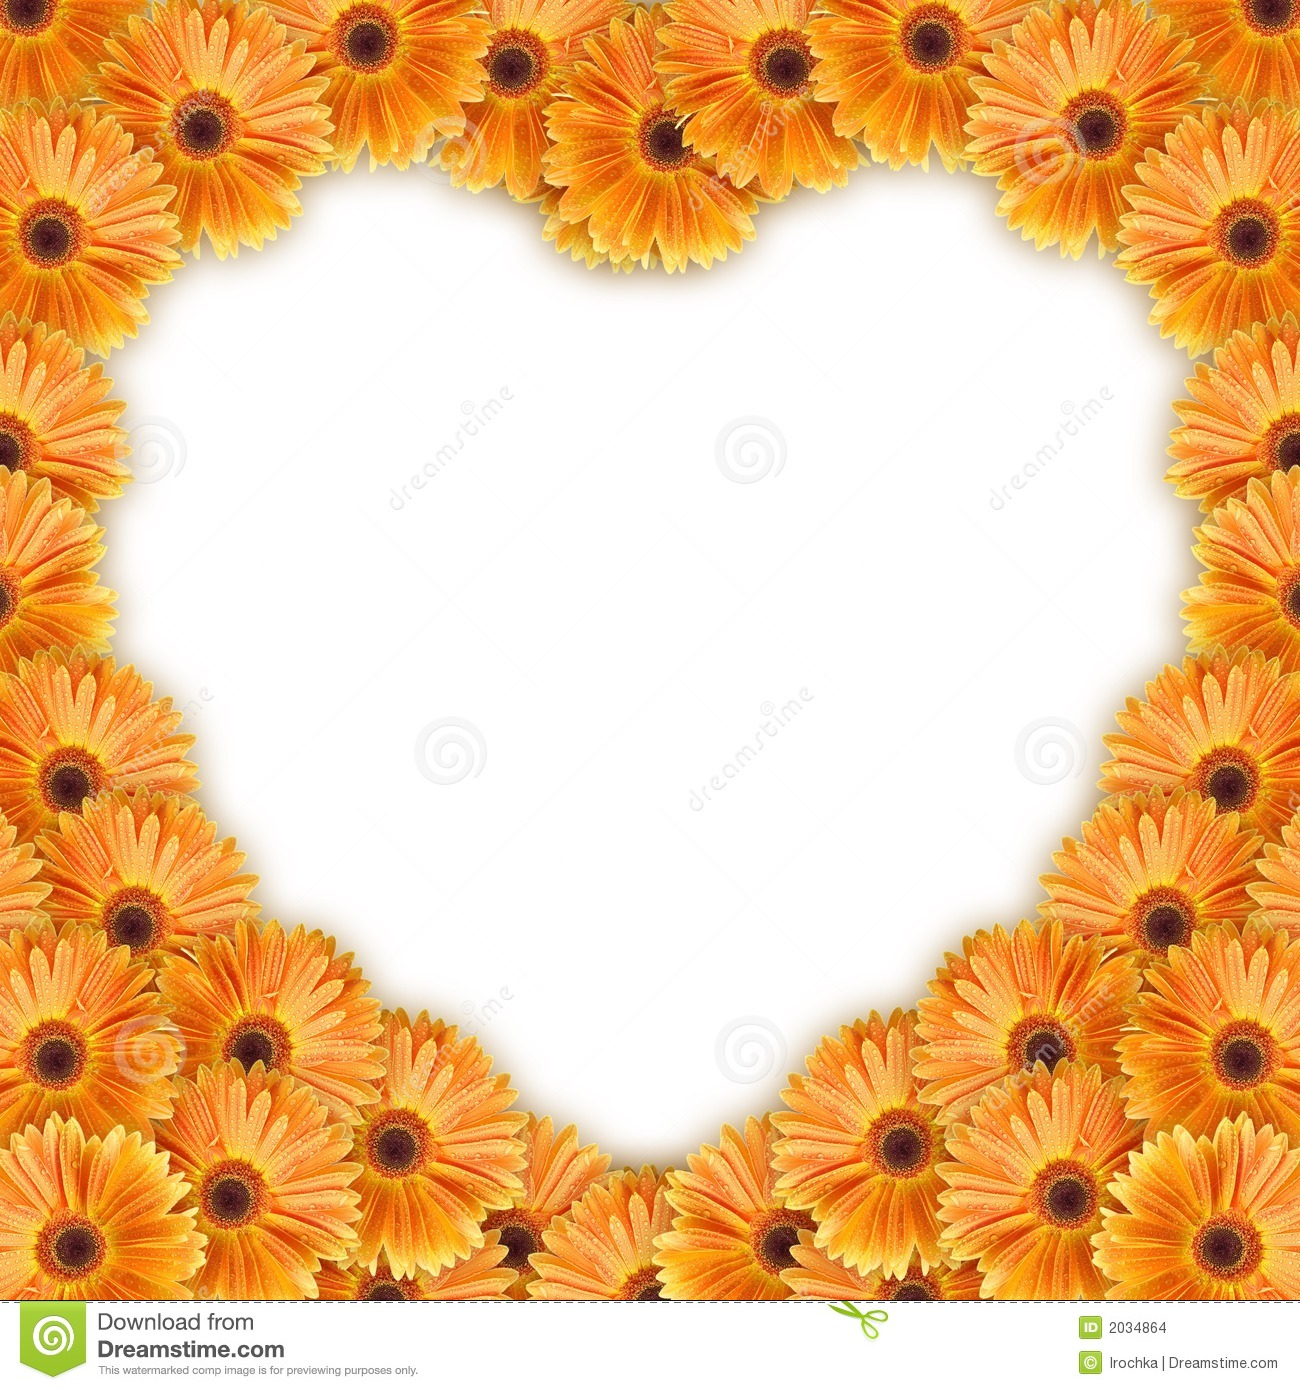 Orange flowers arranged in a heart pattern. Copy space available.